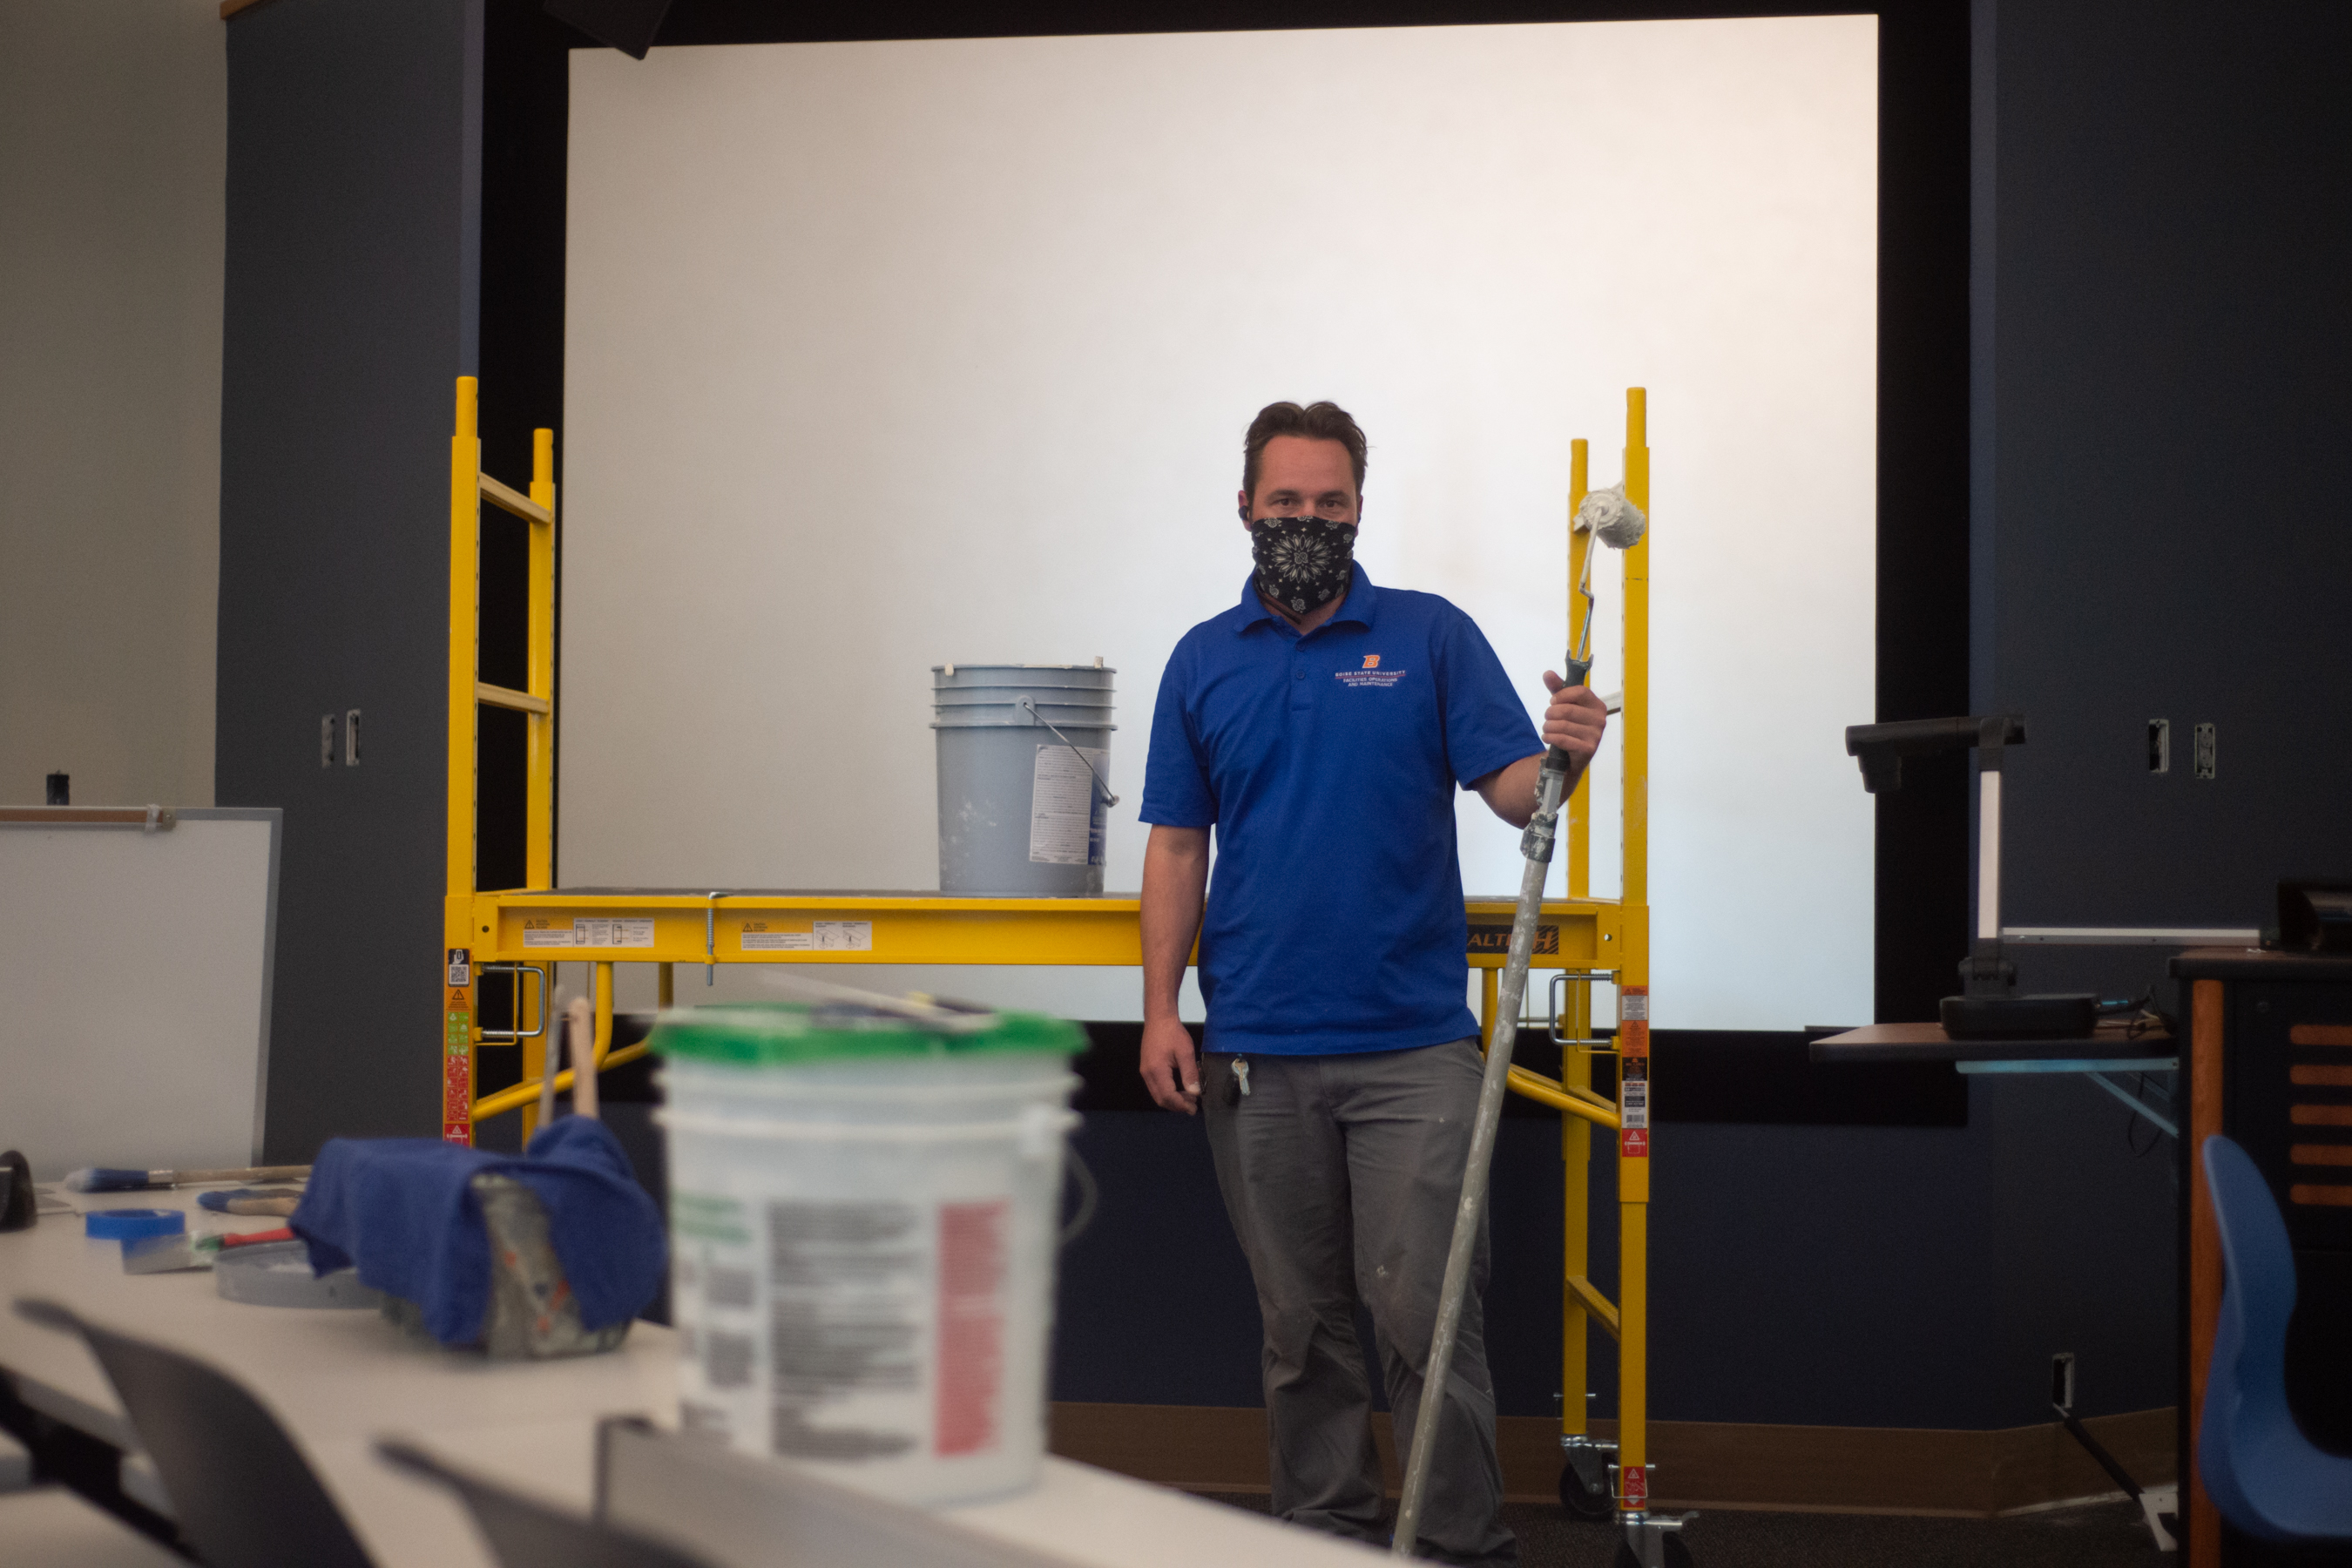 Jason Carlton is working on a painting project in the Interactive Learning Center, where the team has been busy painting all of the building's classrooms and hallways. Photo, Patrick Sweeney.